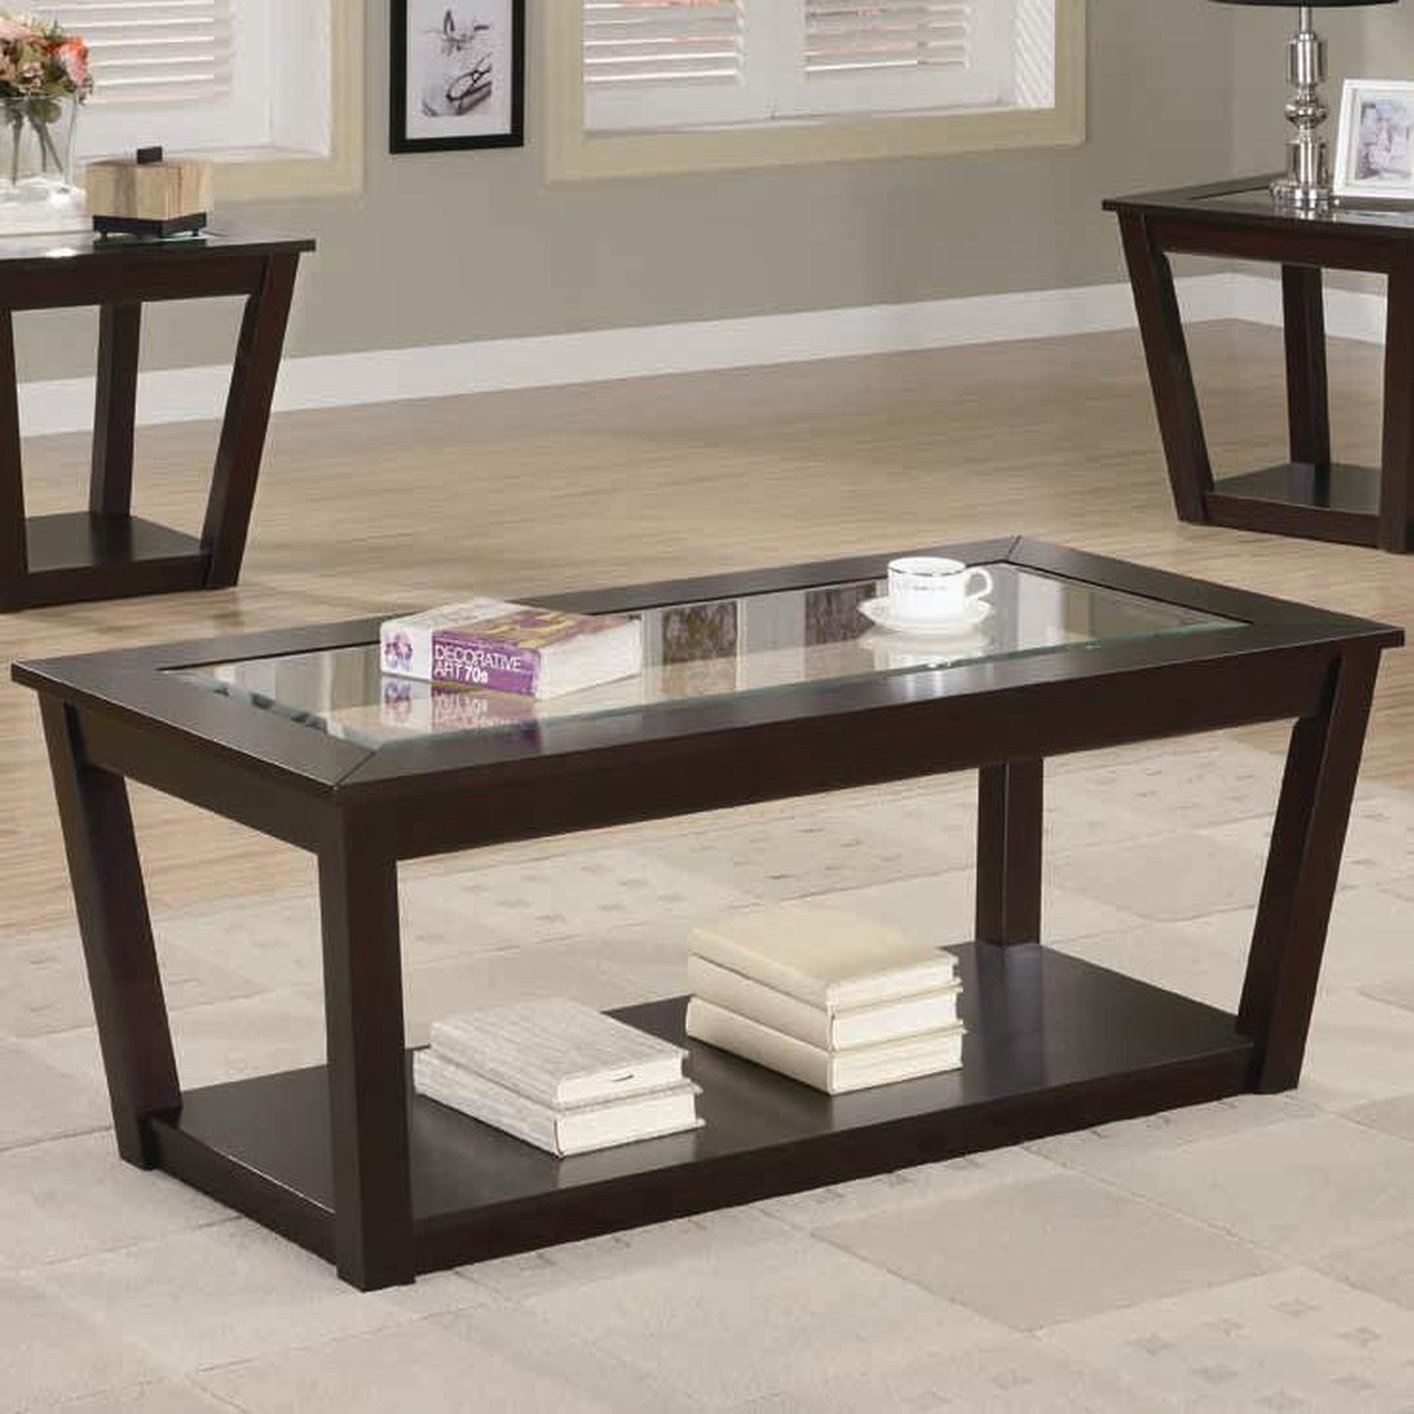 Brown Glass Coffee Table Related How To Decorate Your Living Room Furniture Inspiration Ideas Simple And Neat Look (Image 7 of 10)